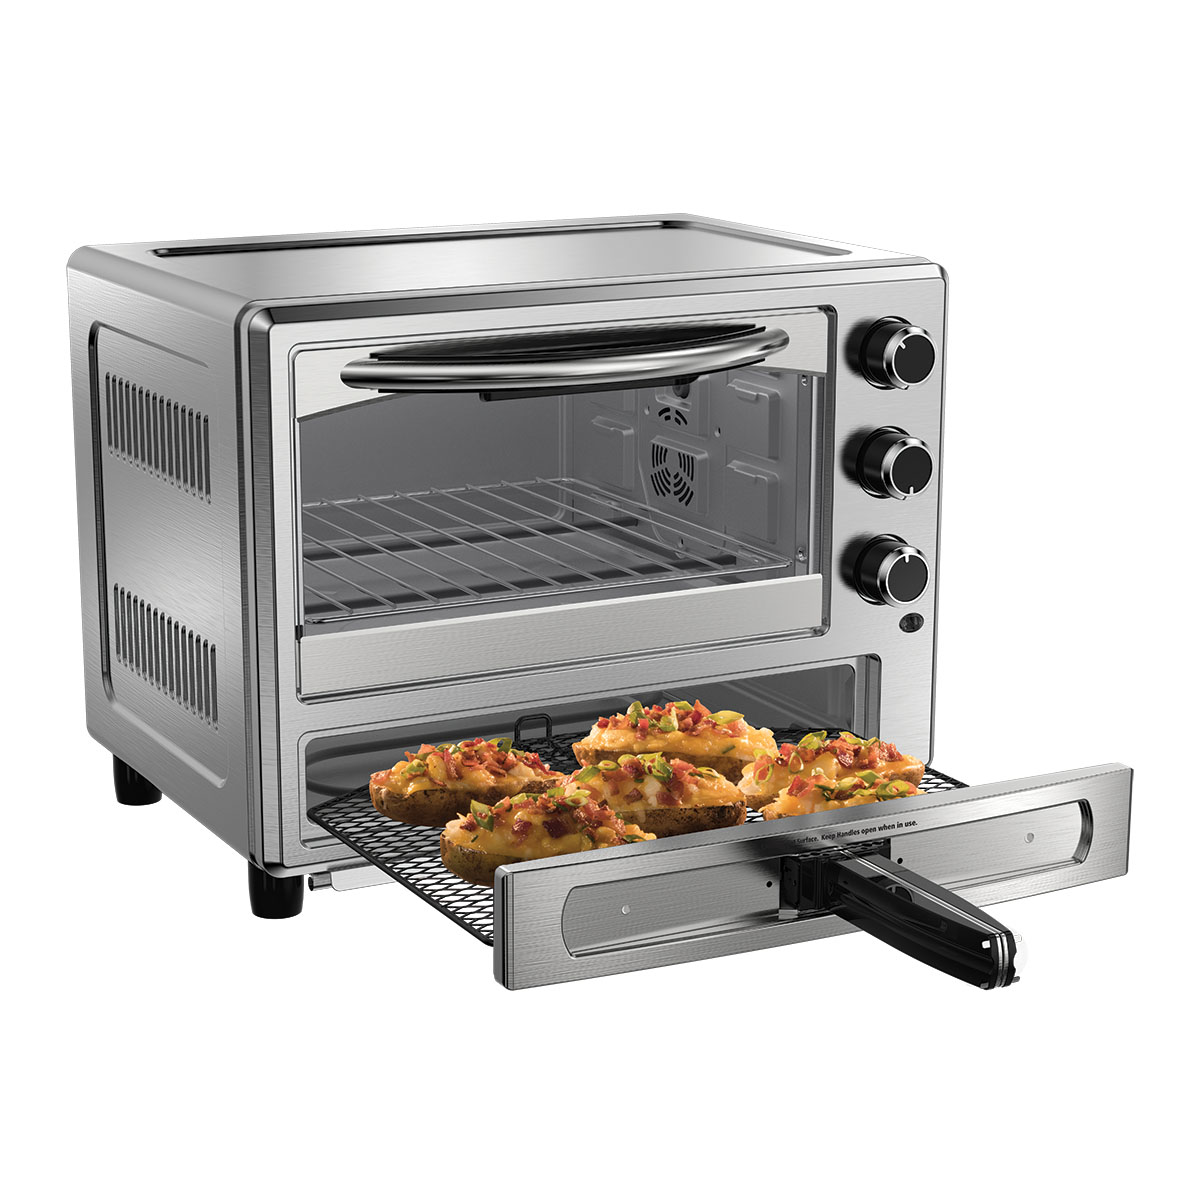 Oster Stainless Steel Convection Oven with Pizza Drawer TSSTTVPZDS 1